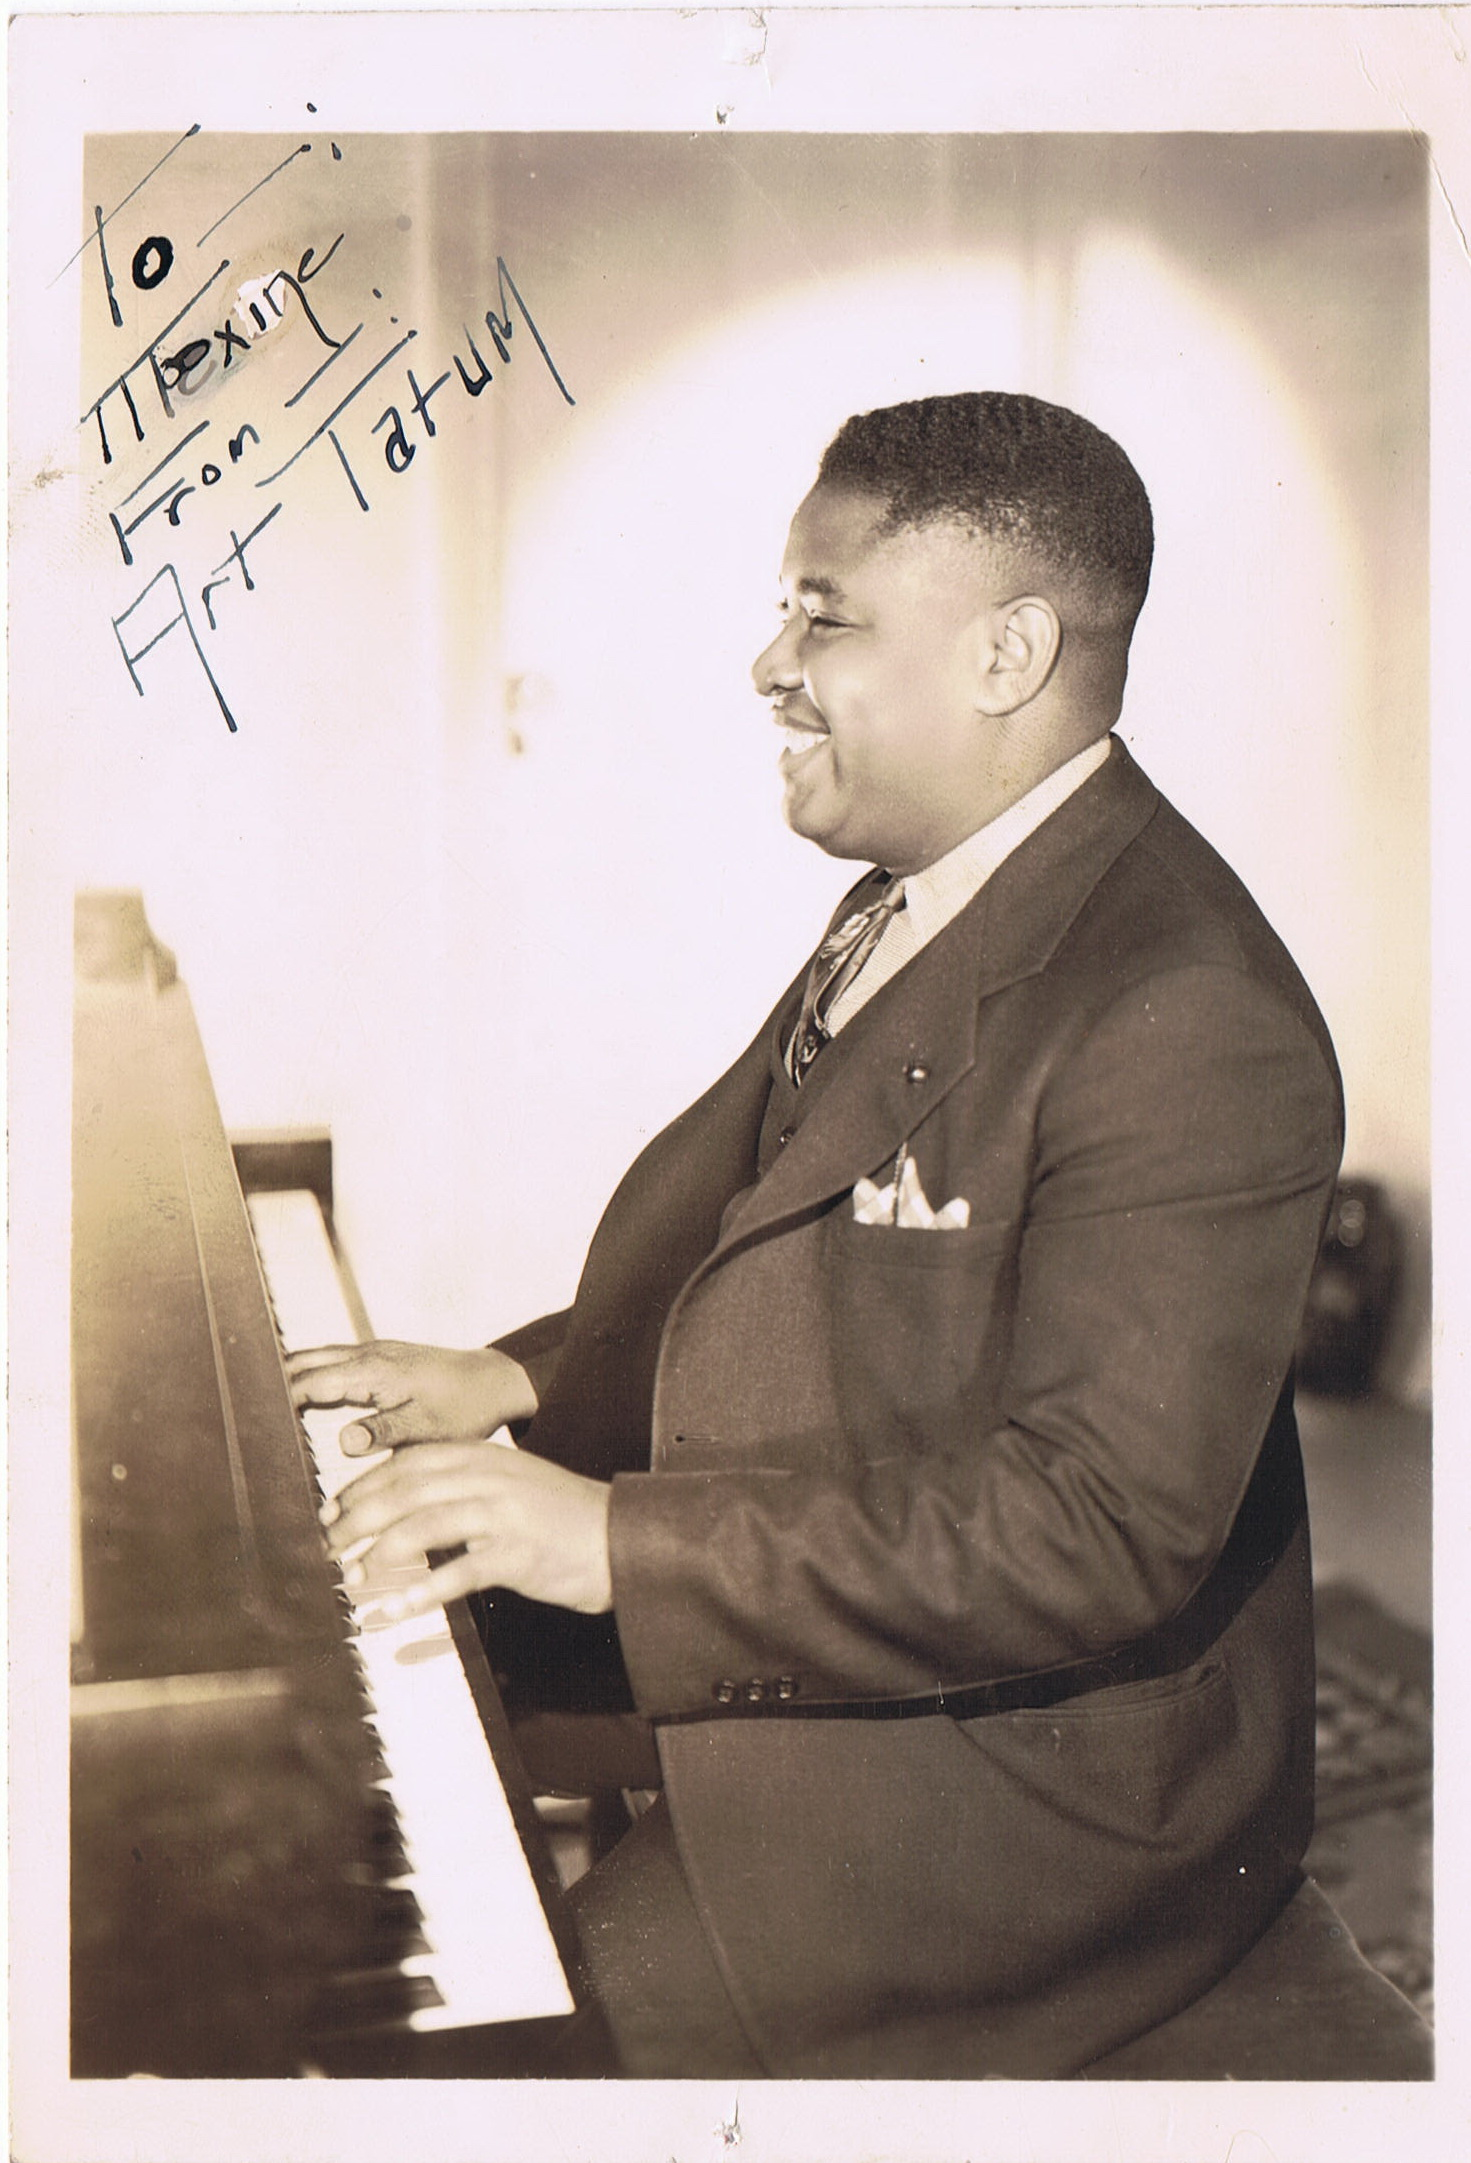 Art Tatum - Memories Of Art Tatum